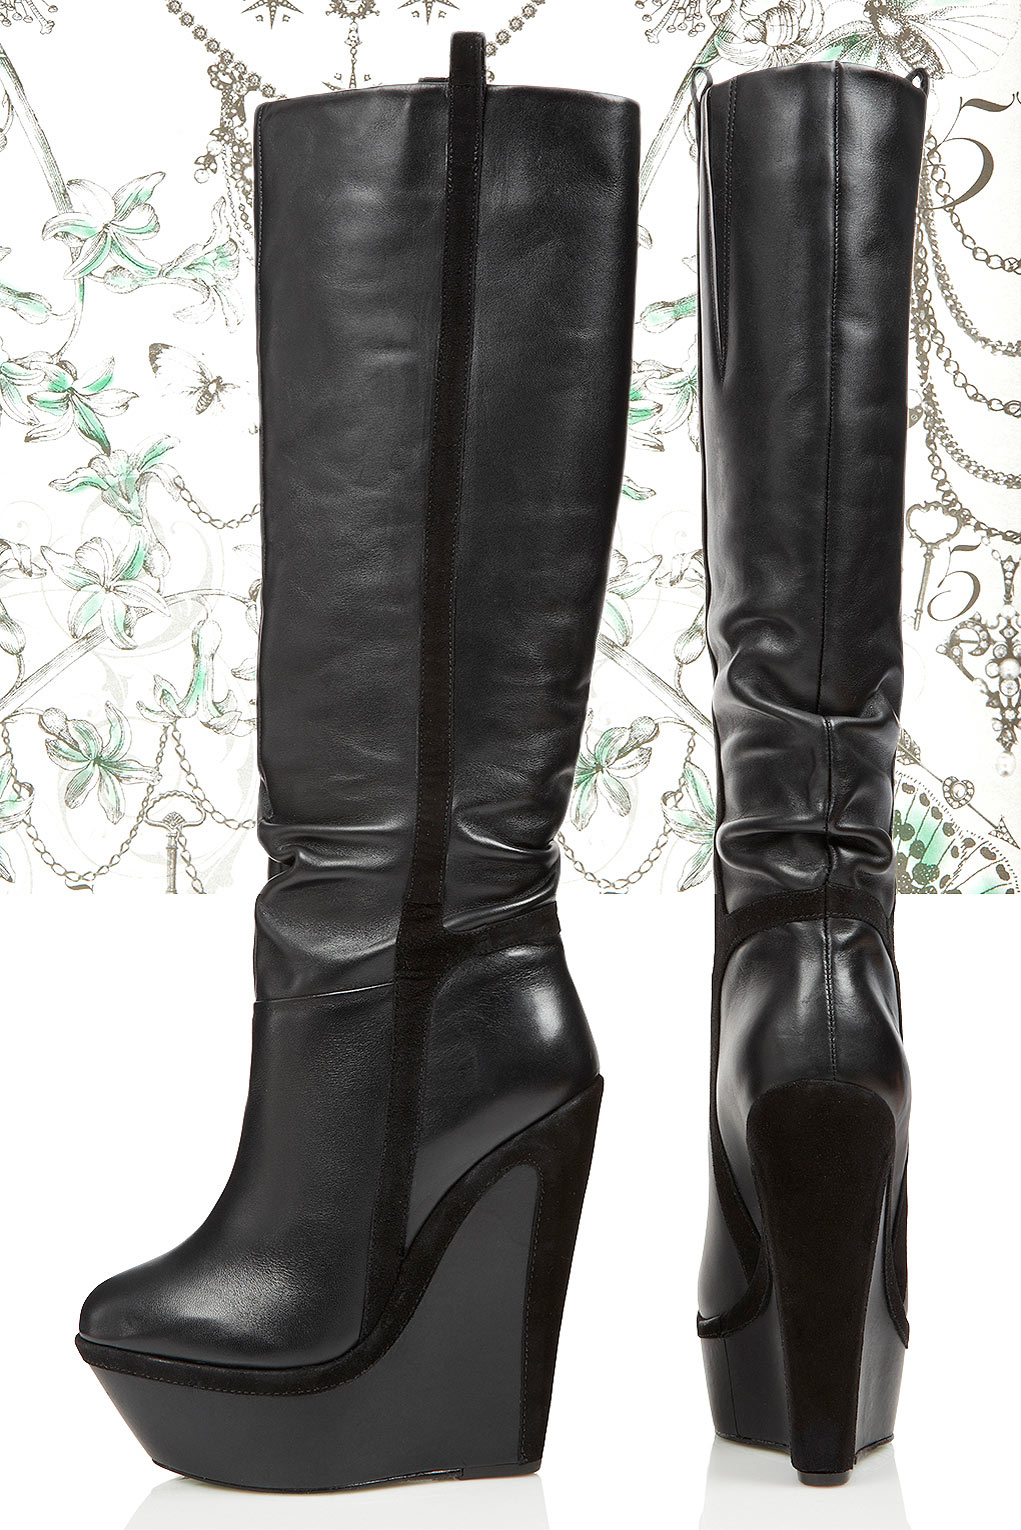 Topshop Winters Knight Wedge Boots By Cjg In Black Lyst